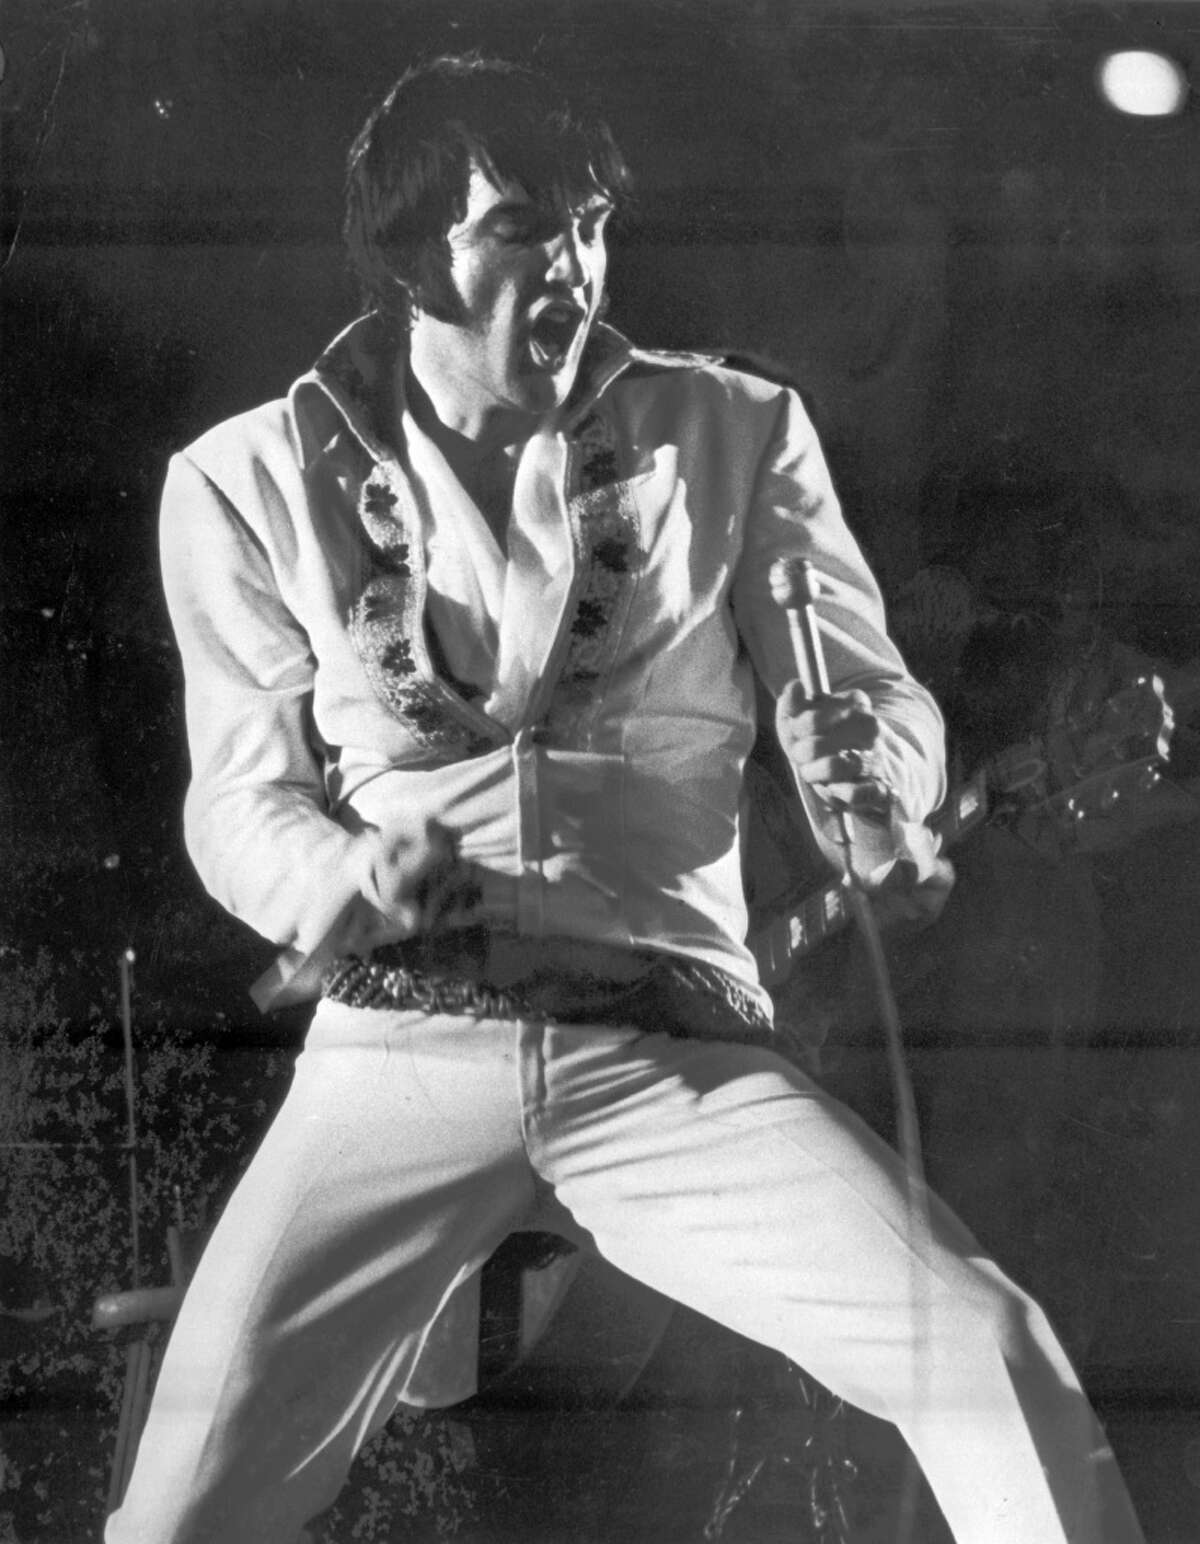 Double-Stuf Elvis By the '70s, he was no longer considered dangerous. Things were starting to go south, and he died in 1977 at the age of 42.